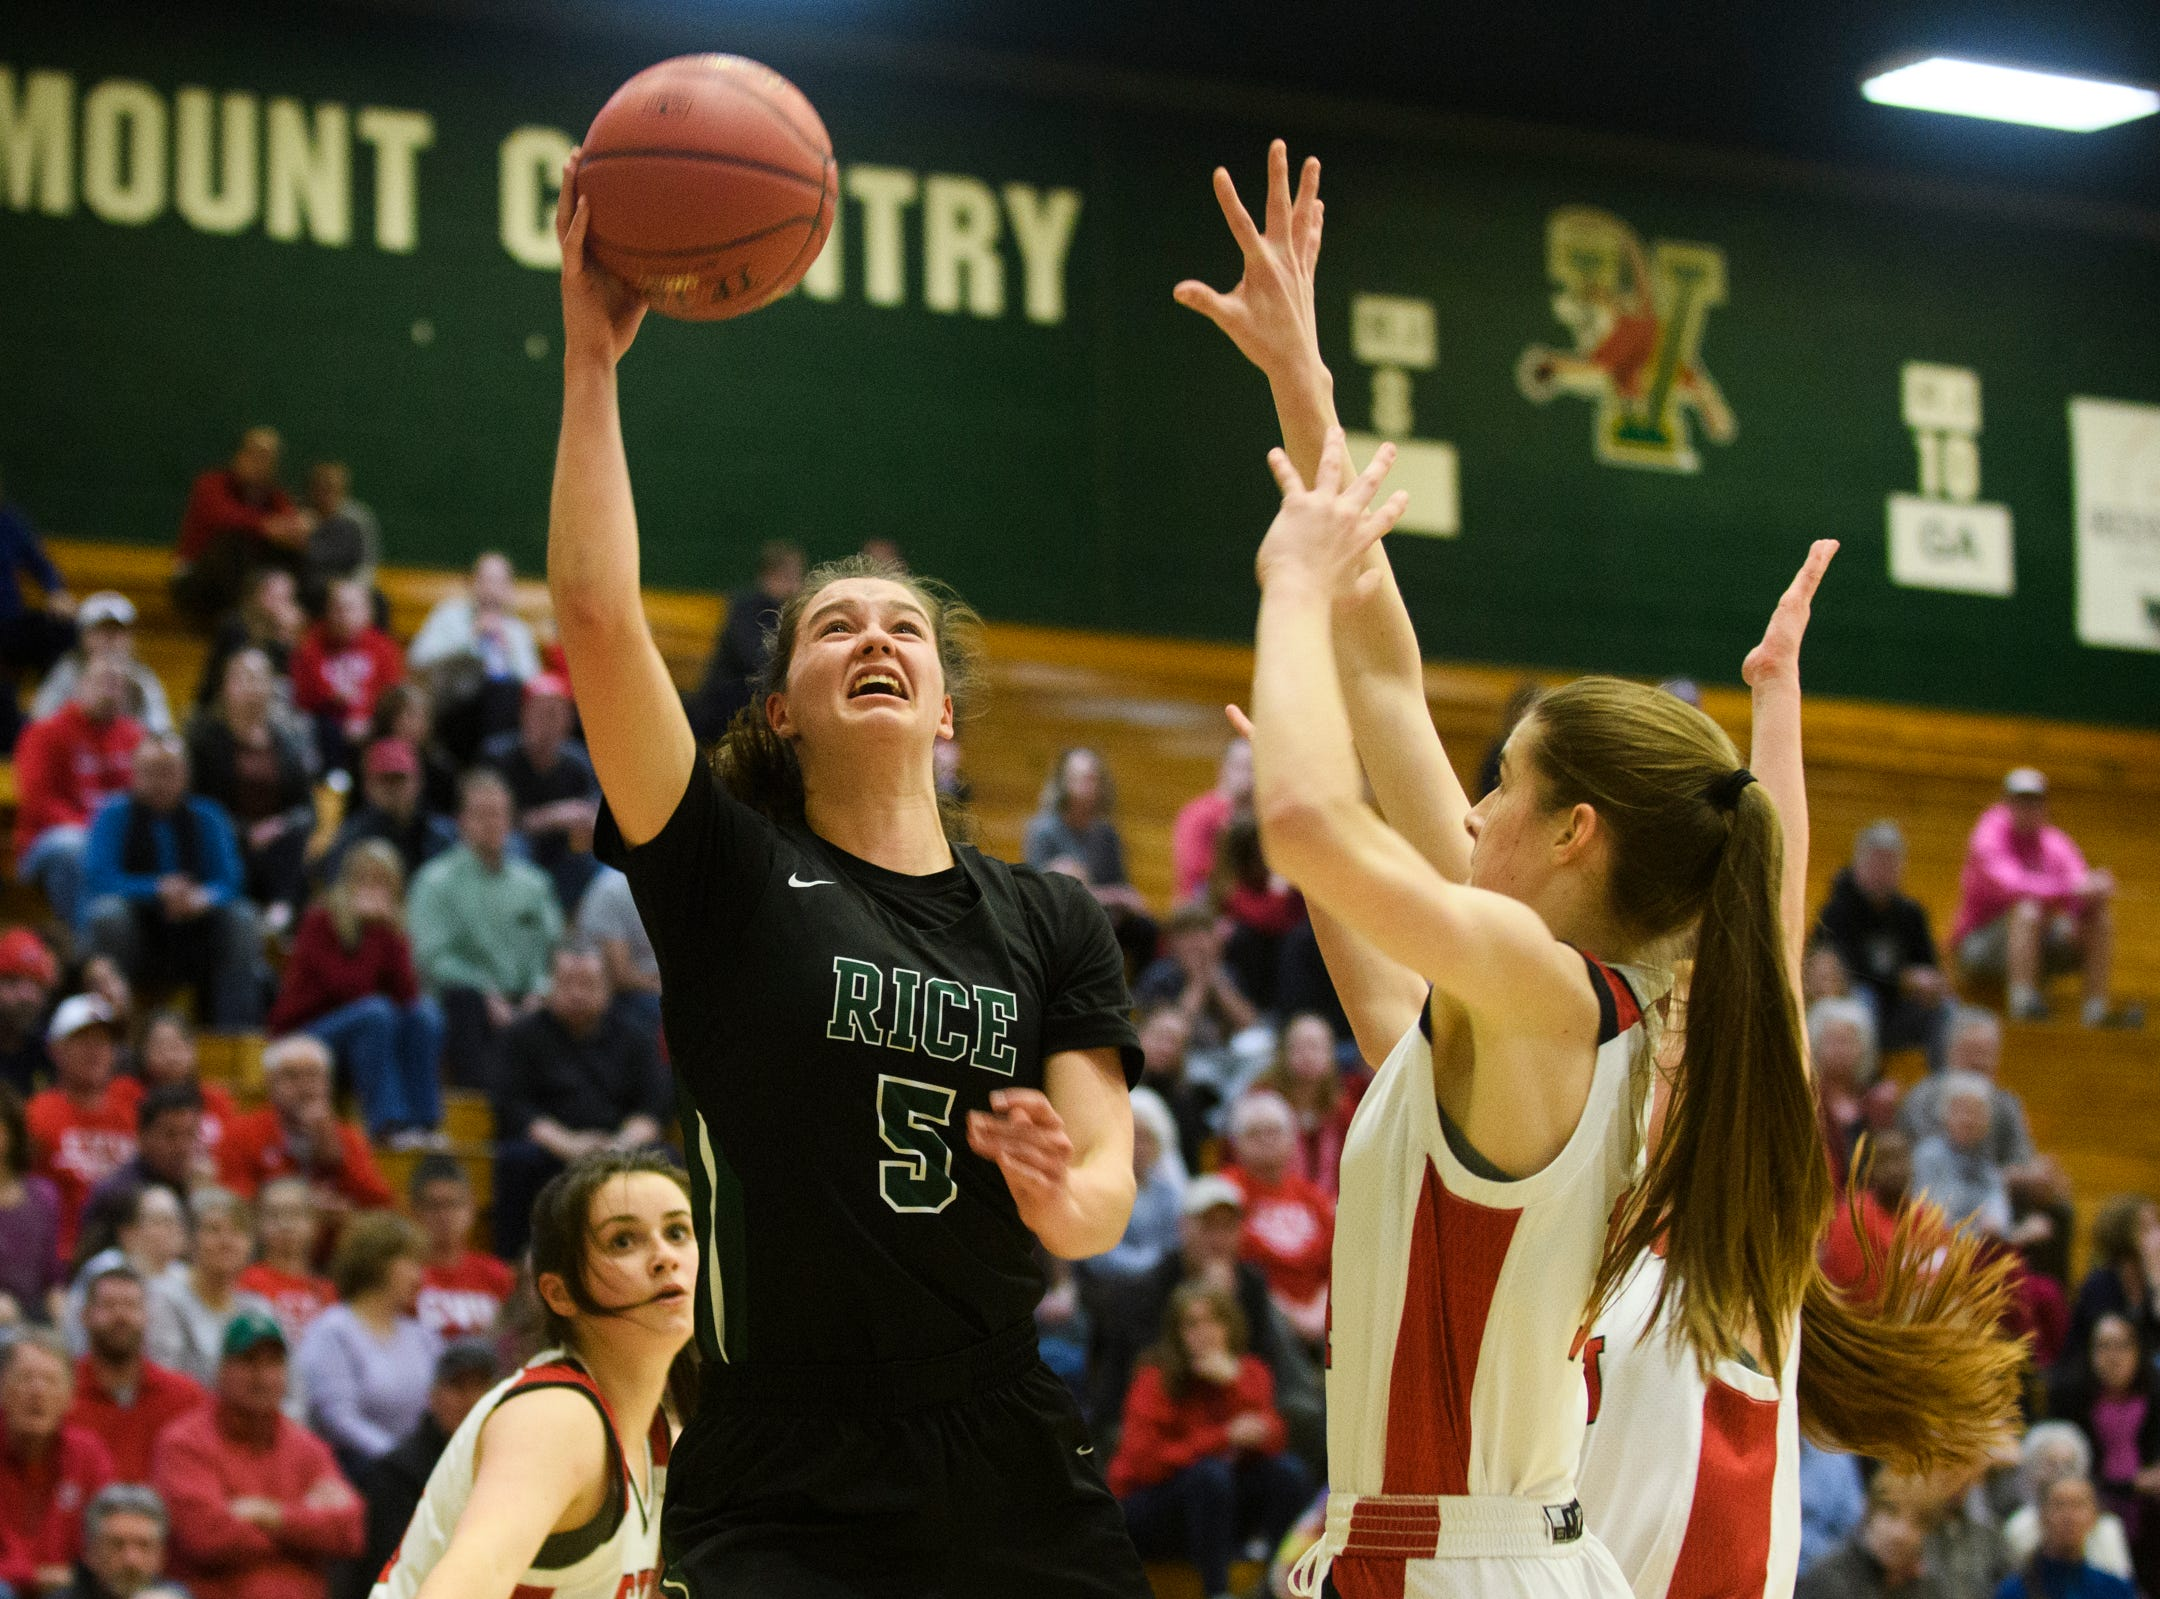 Rice's Petra Langan (5) leaps for a lay up during the girls semifinal basketball game between the Rice Green Knights and the Champlain Valley Union Redhawks at Patrick Gym on Wednesday nigh March 6, 2019 in Burlington, Vermont.